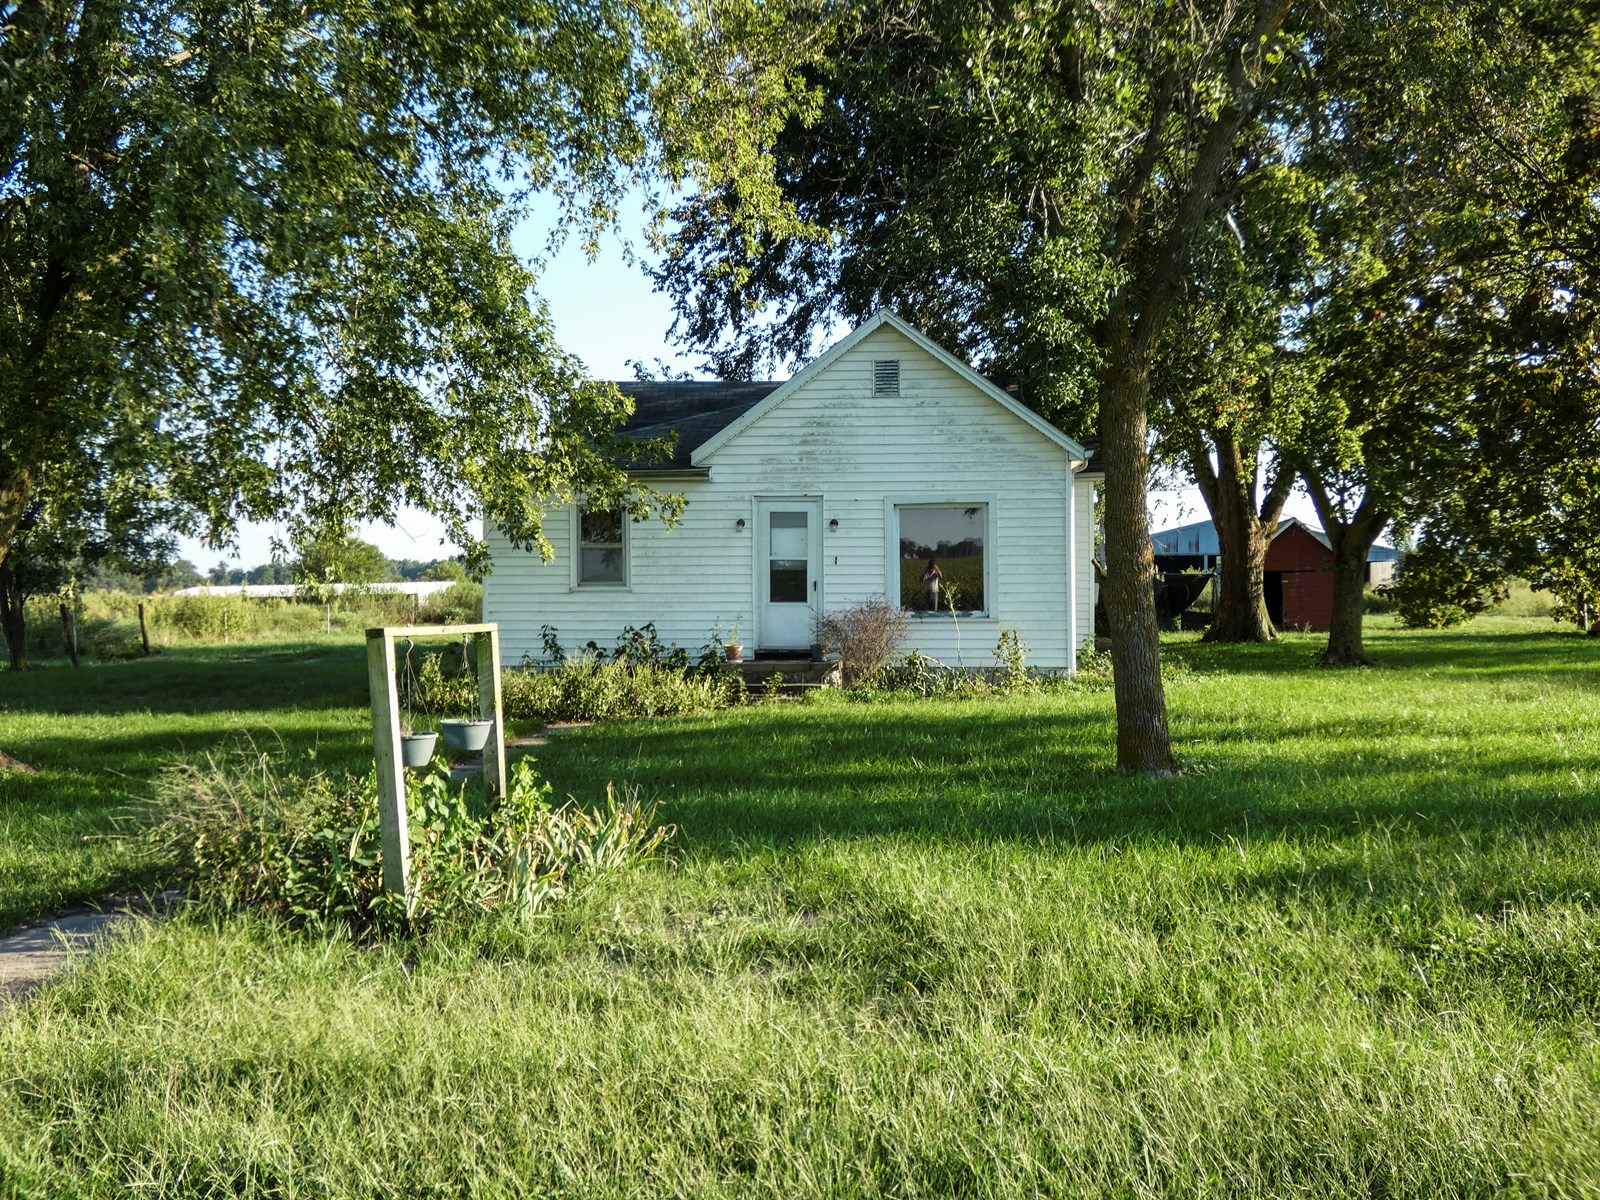 Hog Farm / Country Home & Acreage For Sale Audrain County MO